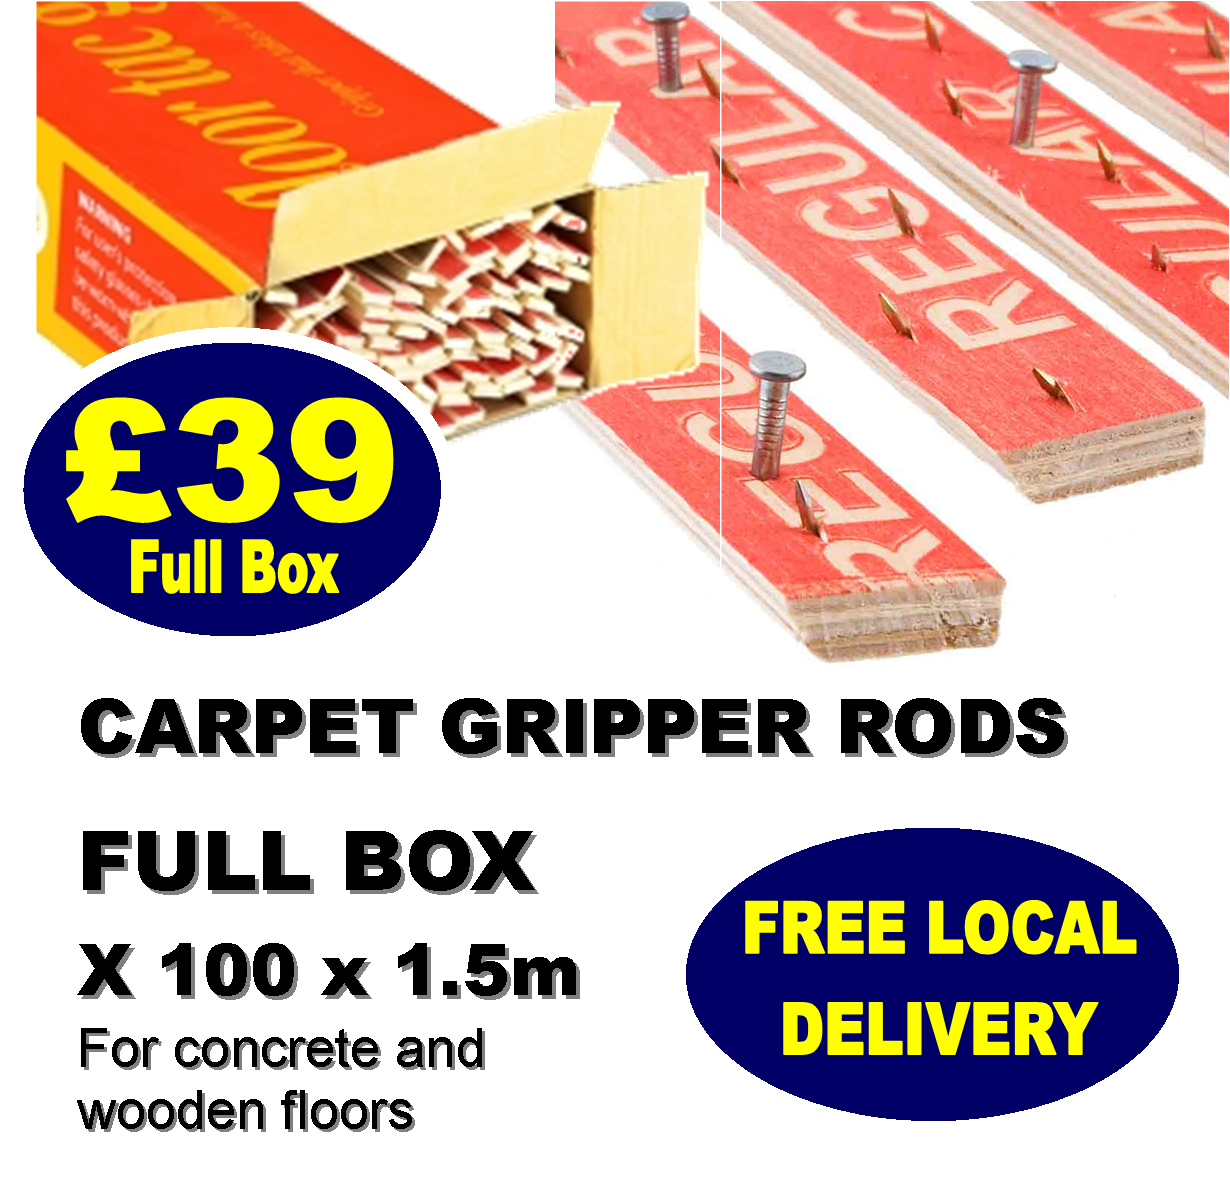 Carpet Gripper Rods. Supply only from Carpets Weekly